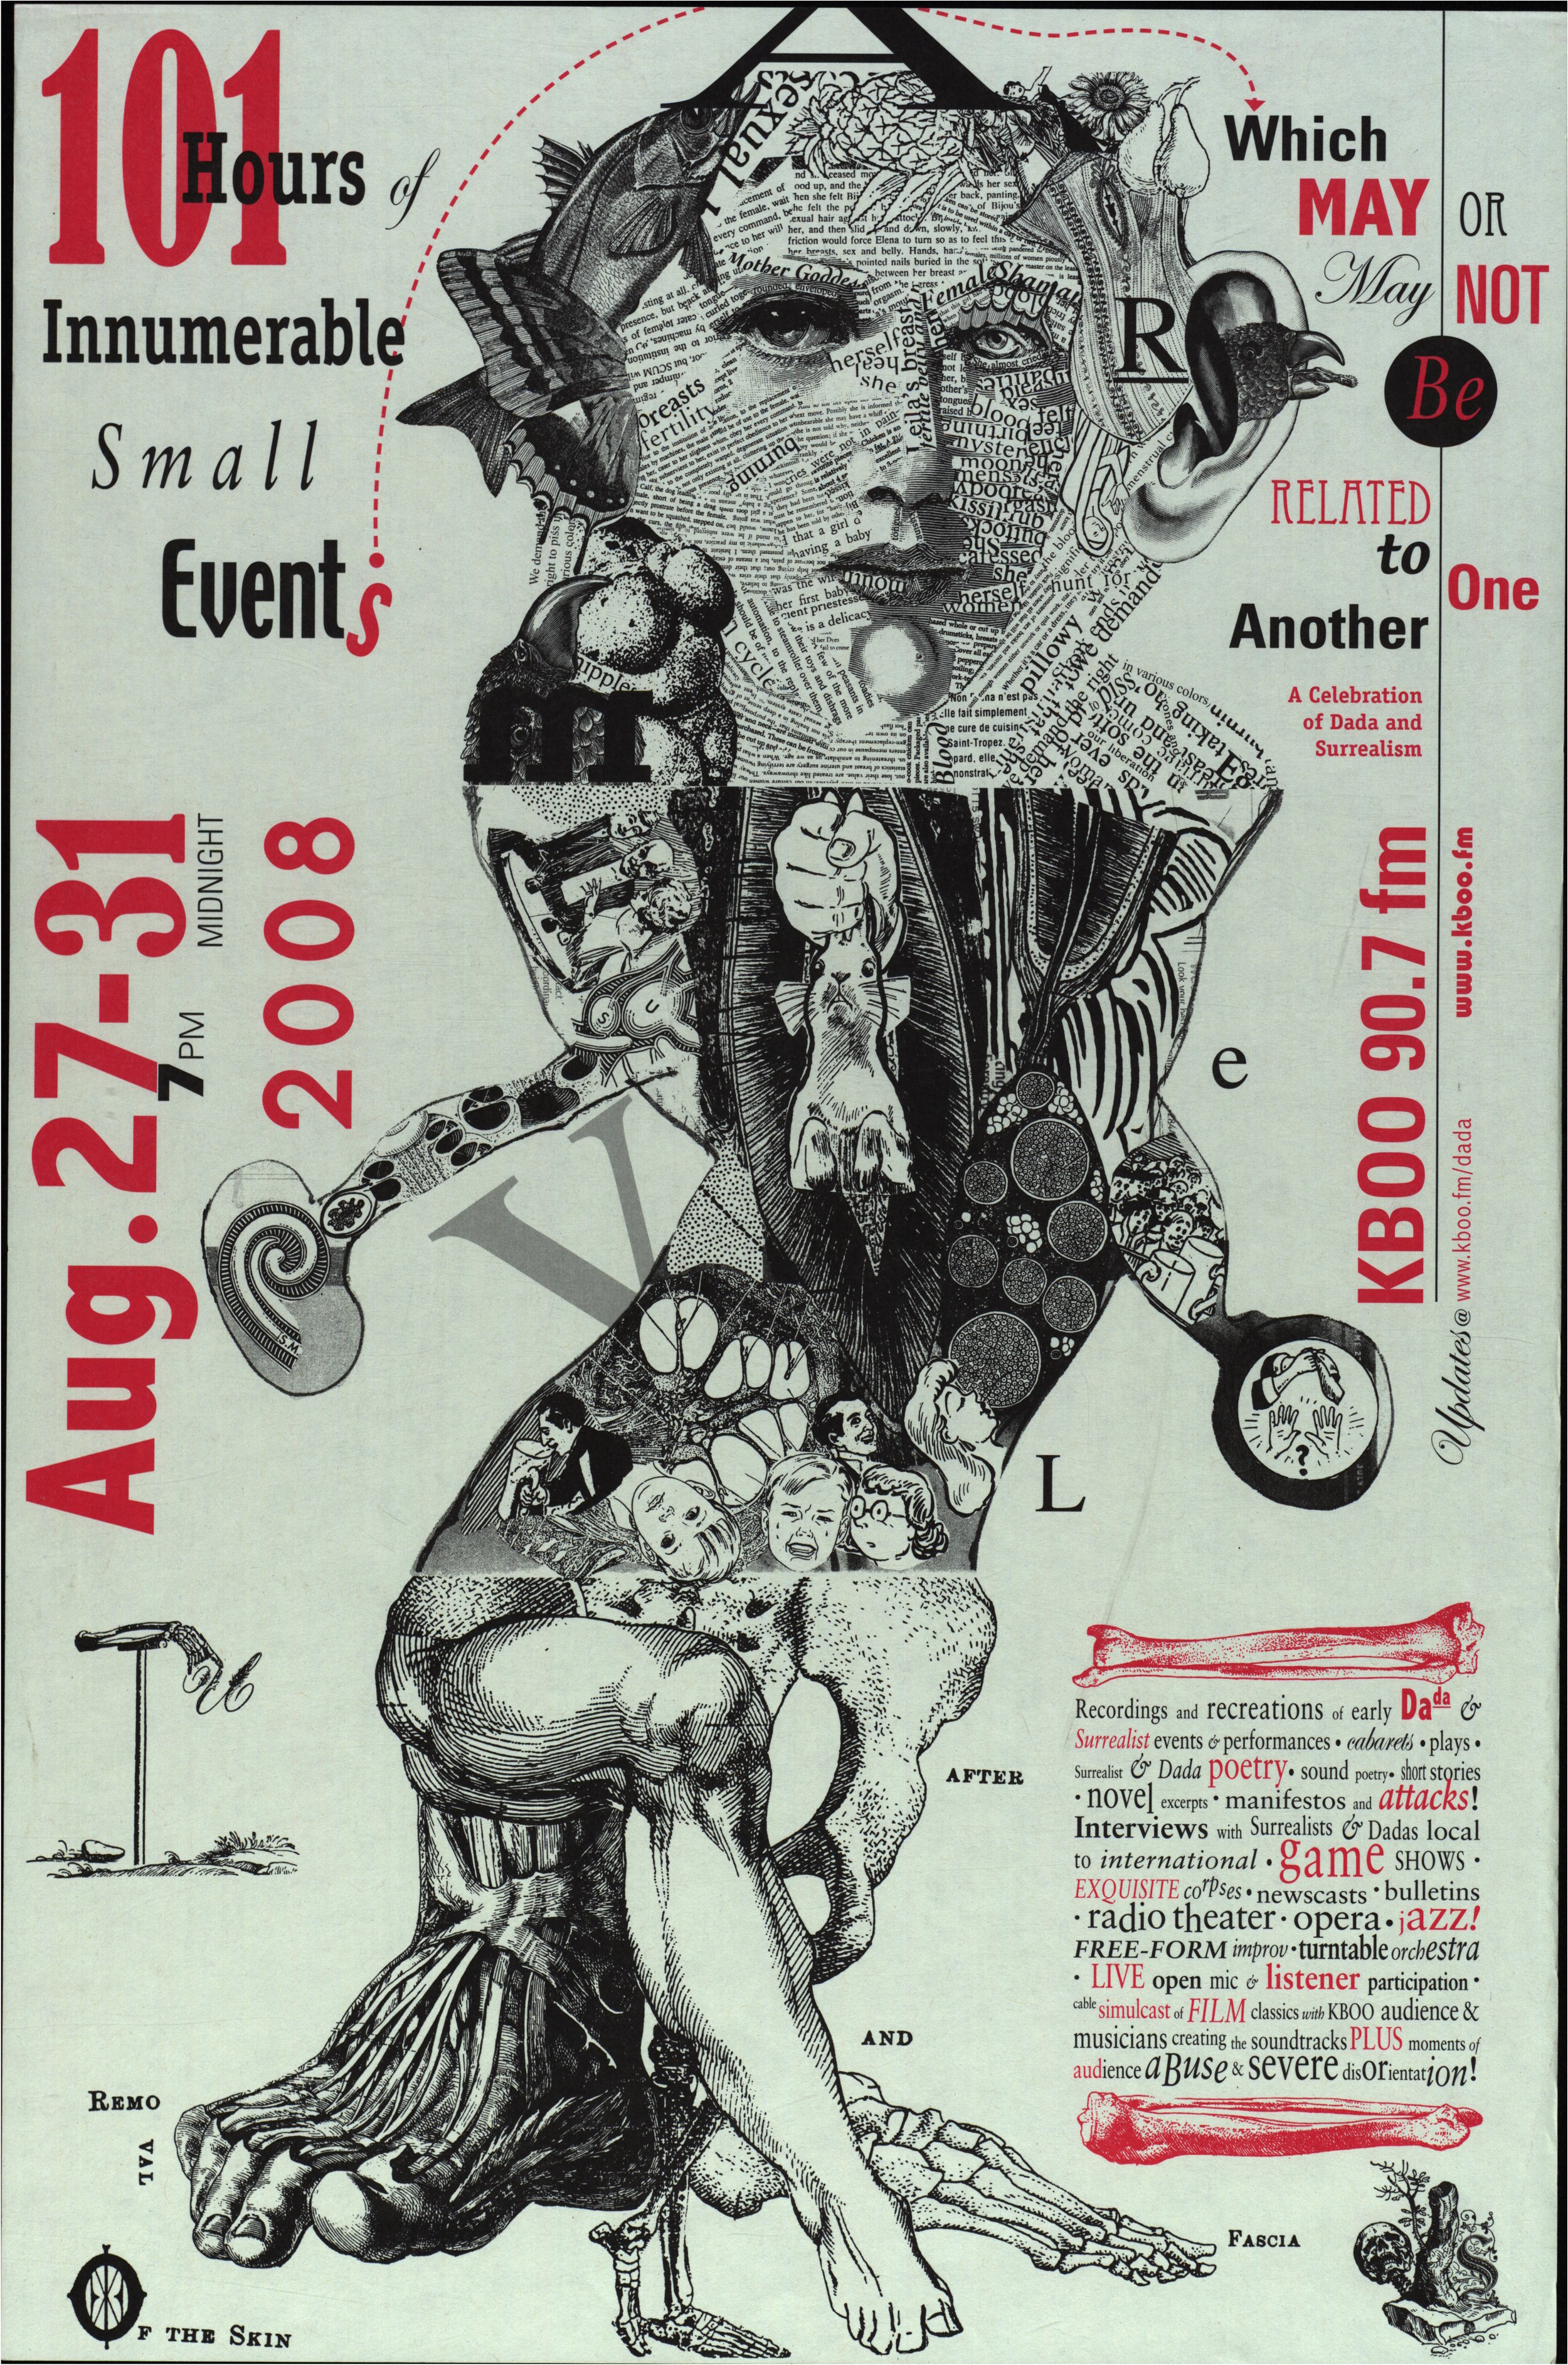 KBOO_Posters_OS_Dada_front_200_vertical.jpg